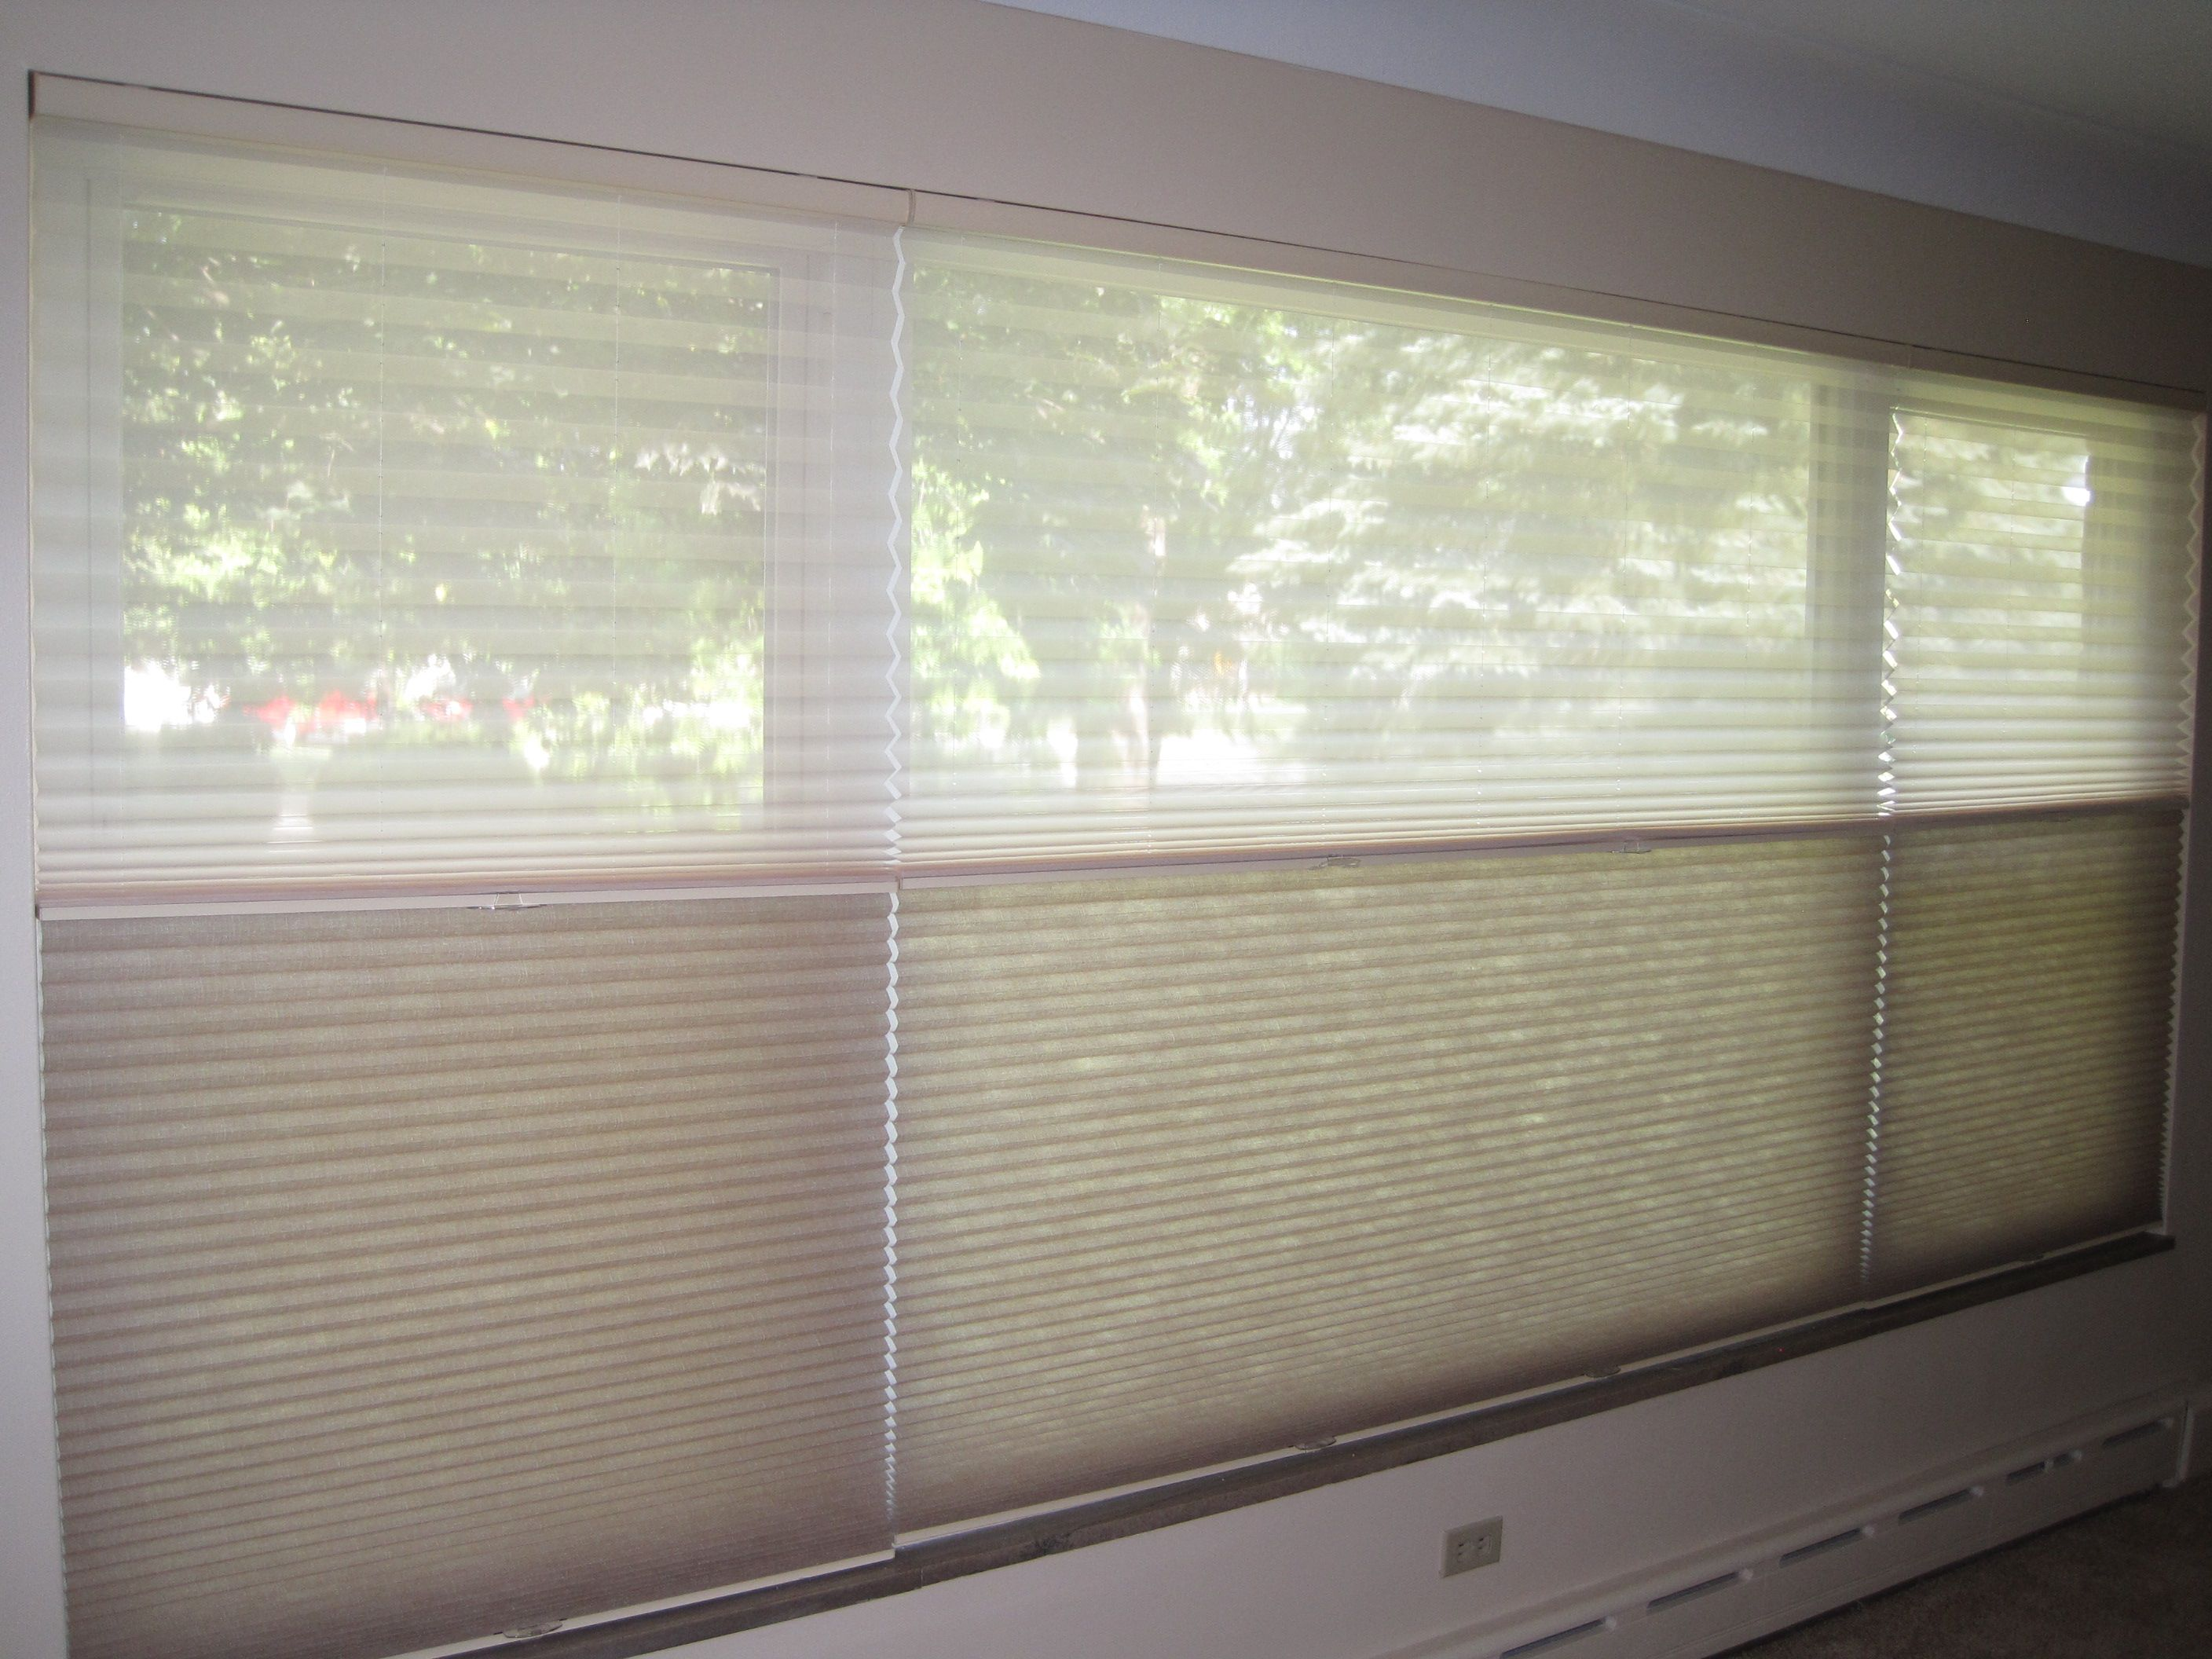 Trilights Trilight Shades Quot A Window Shade With Options